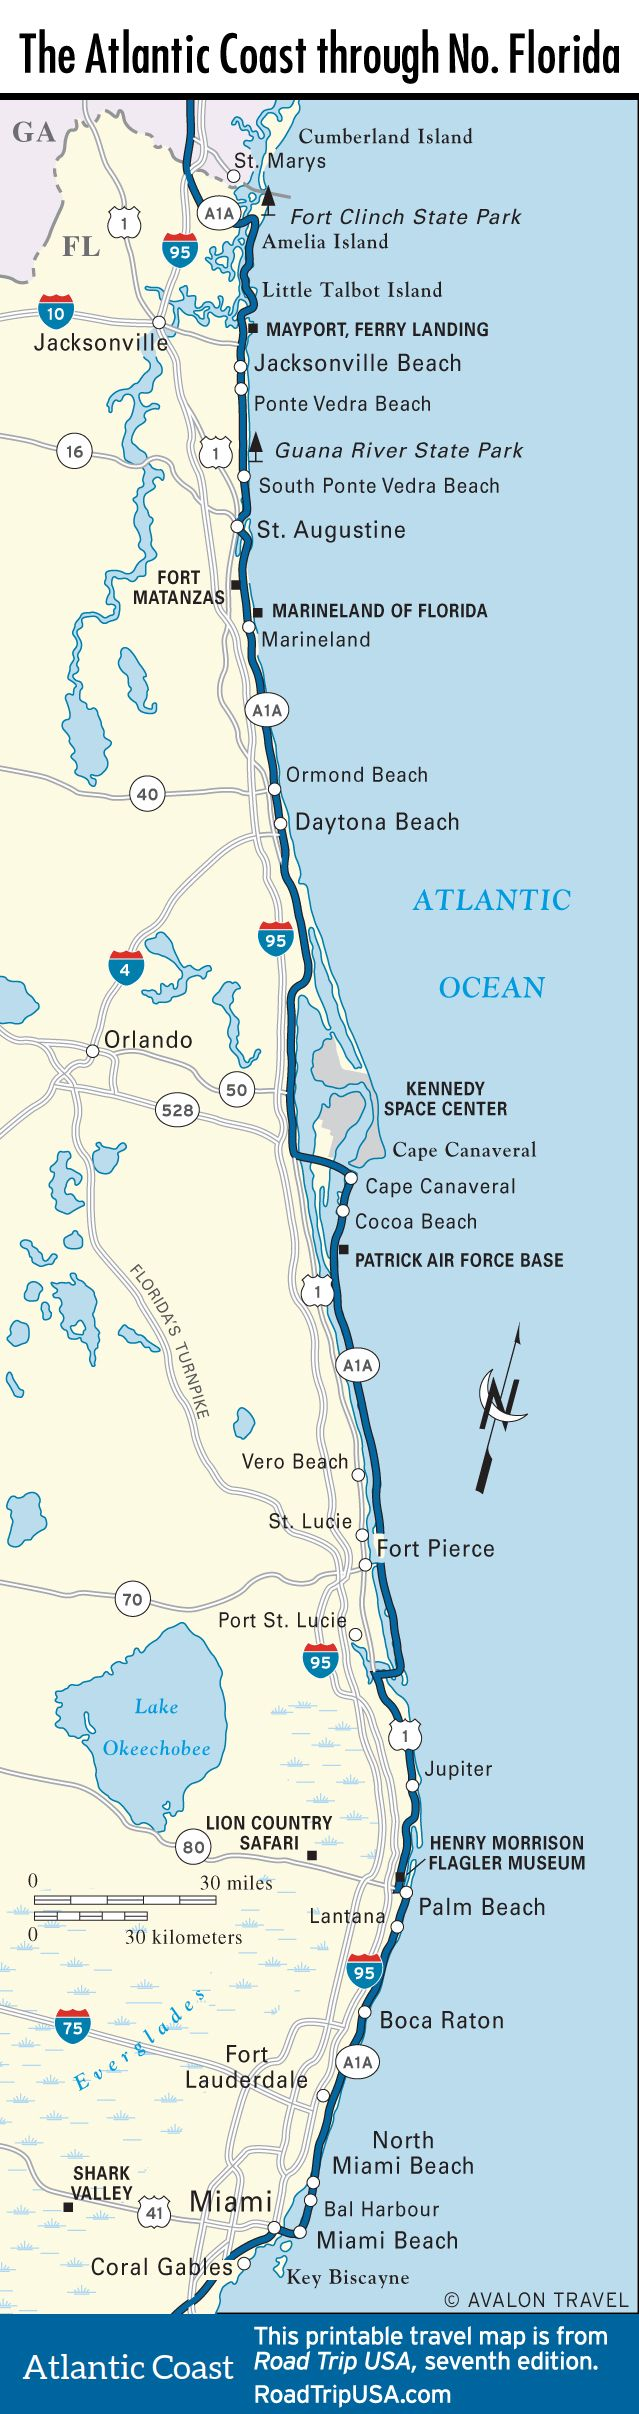 Map Florida East Coast.Map Of The Atlantic Coast Through Northern Florida Florida A1a